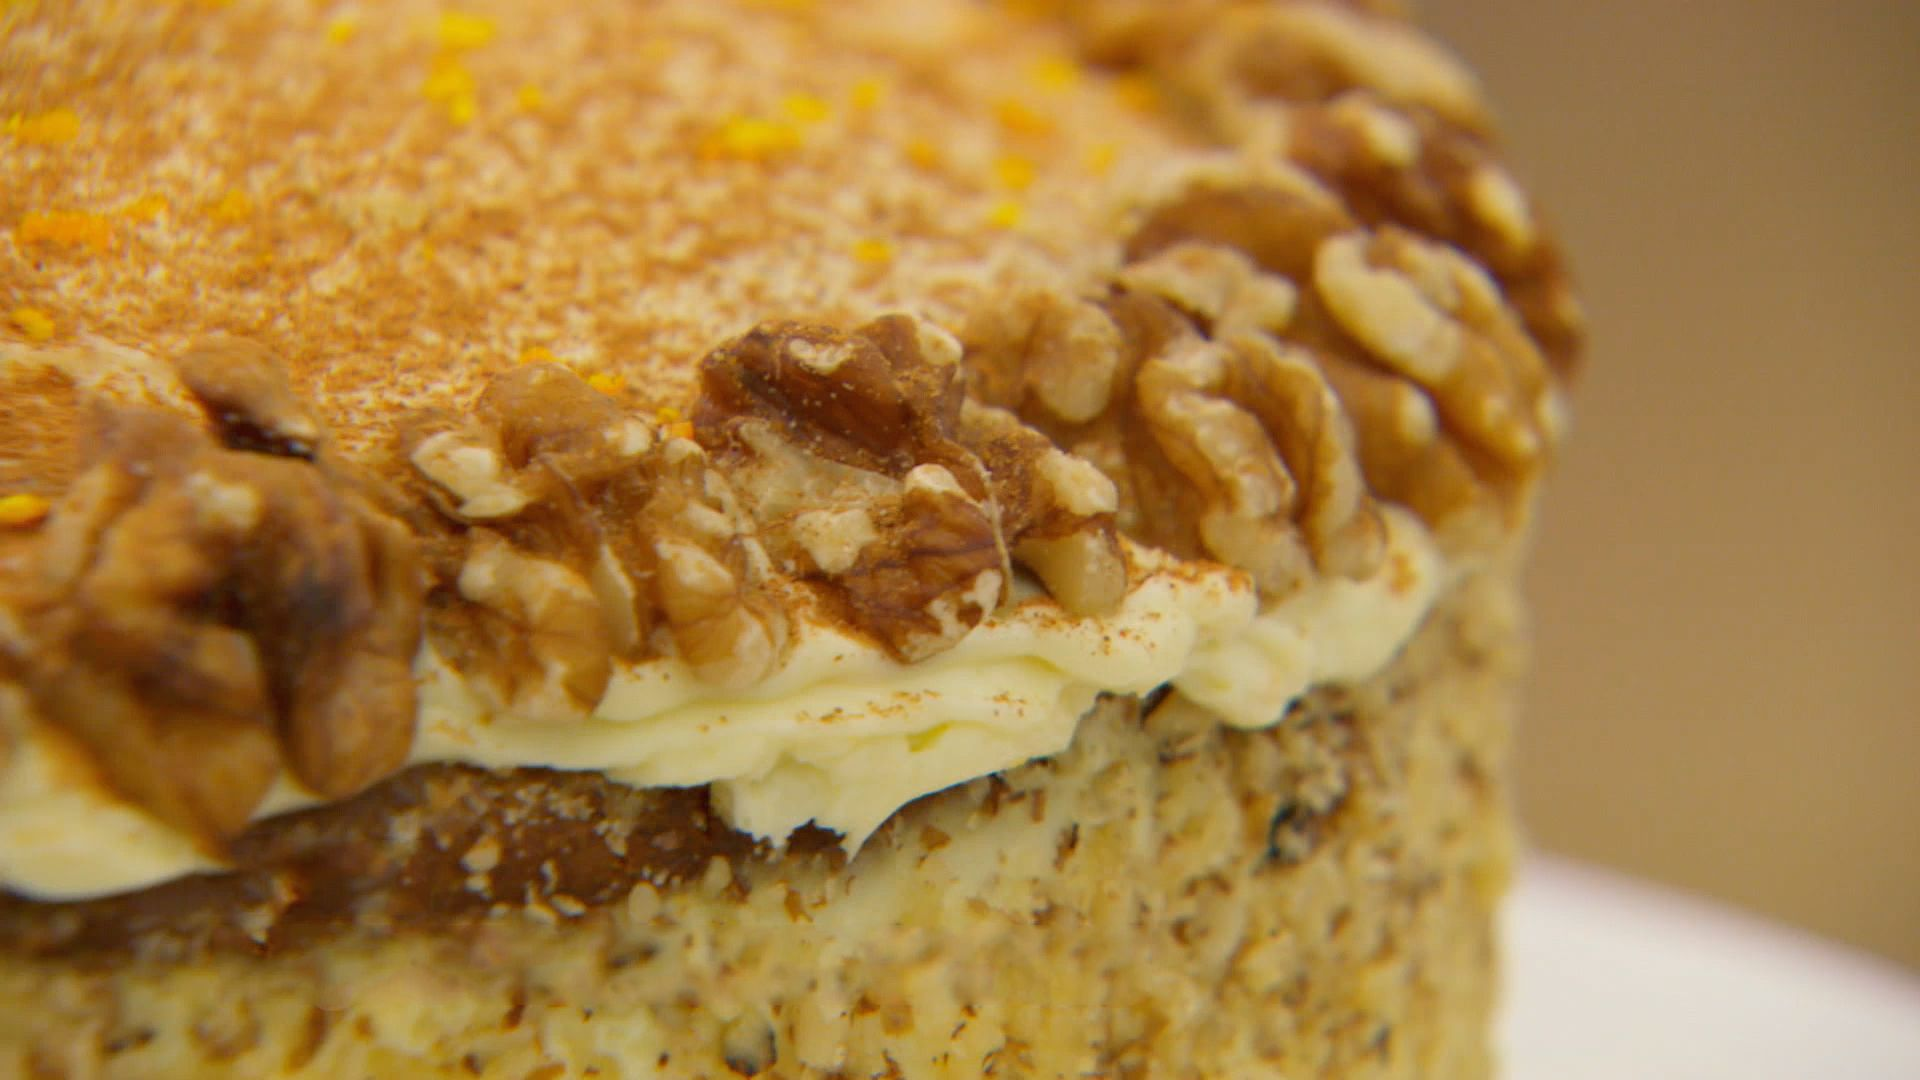 Get mats recipe for a sugarfree carrot cake from season